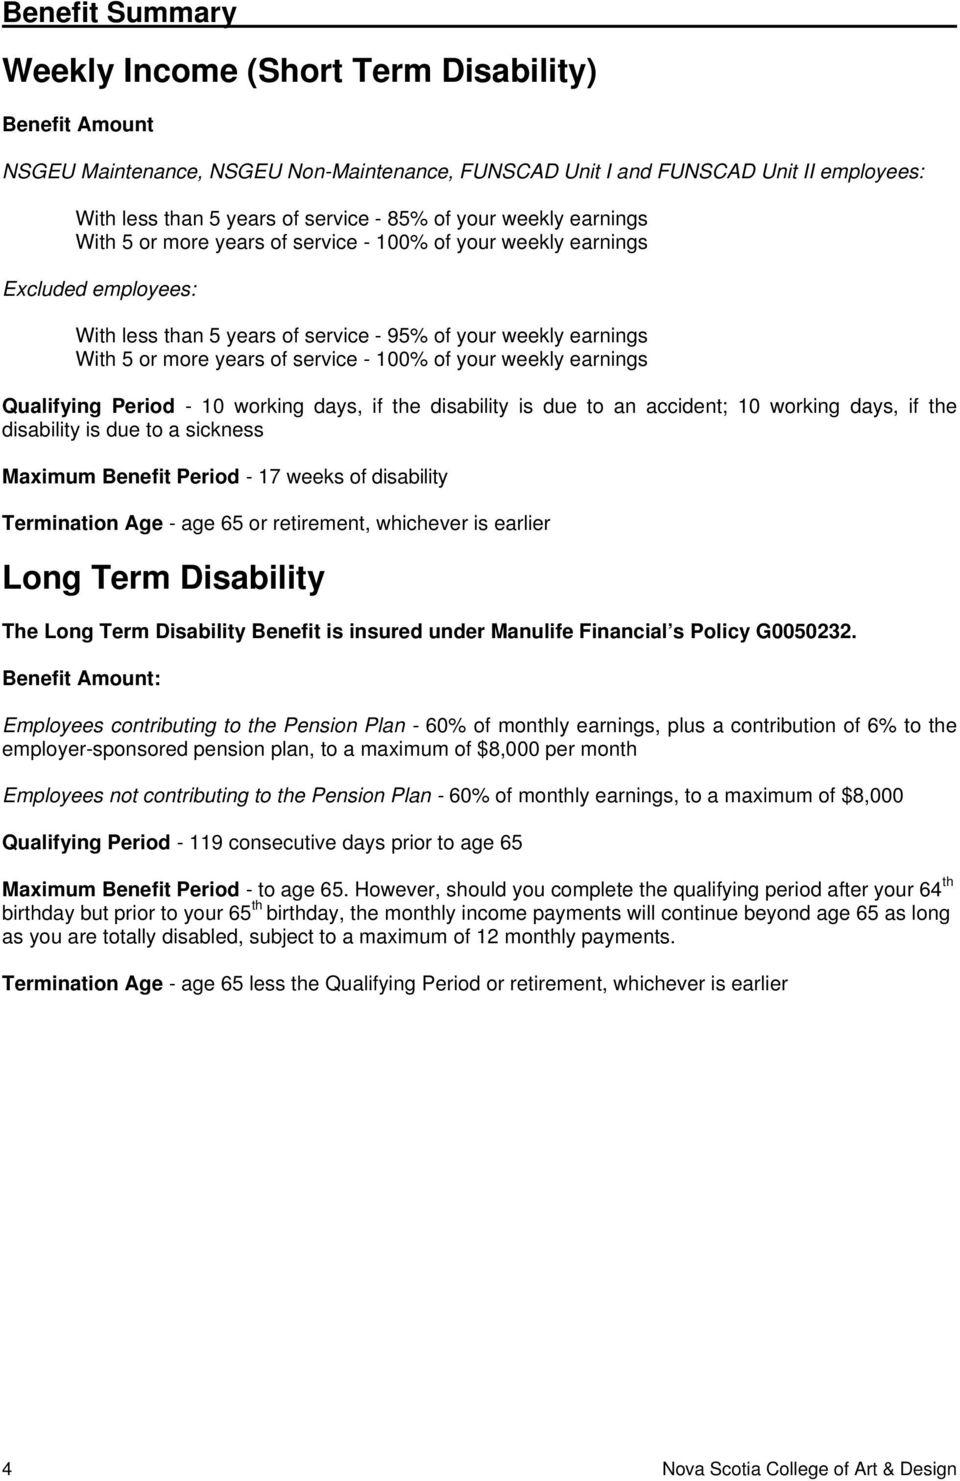 - 100% of your weekly earnings Qualifying Period - 10 working days, if the disability is due to an accident; 10 working days, if the disability is due to a sickness Maximum Benefit Period - 17 weeks